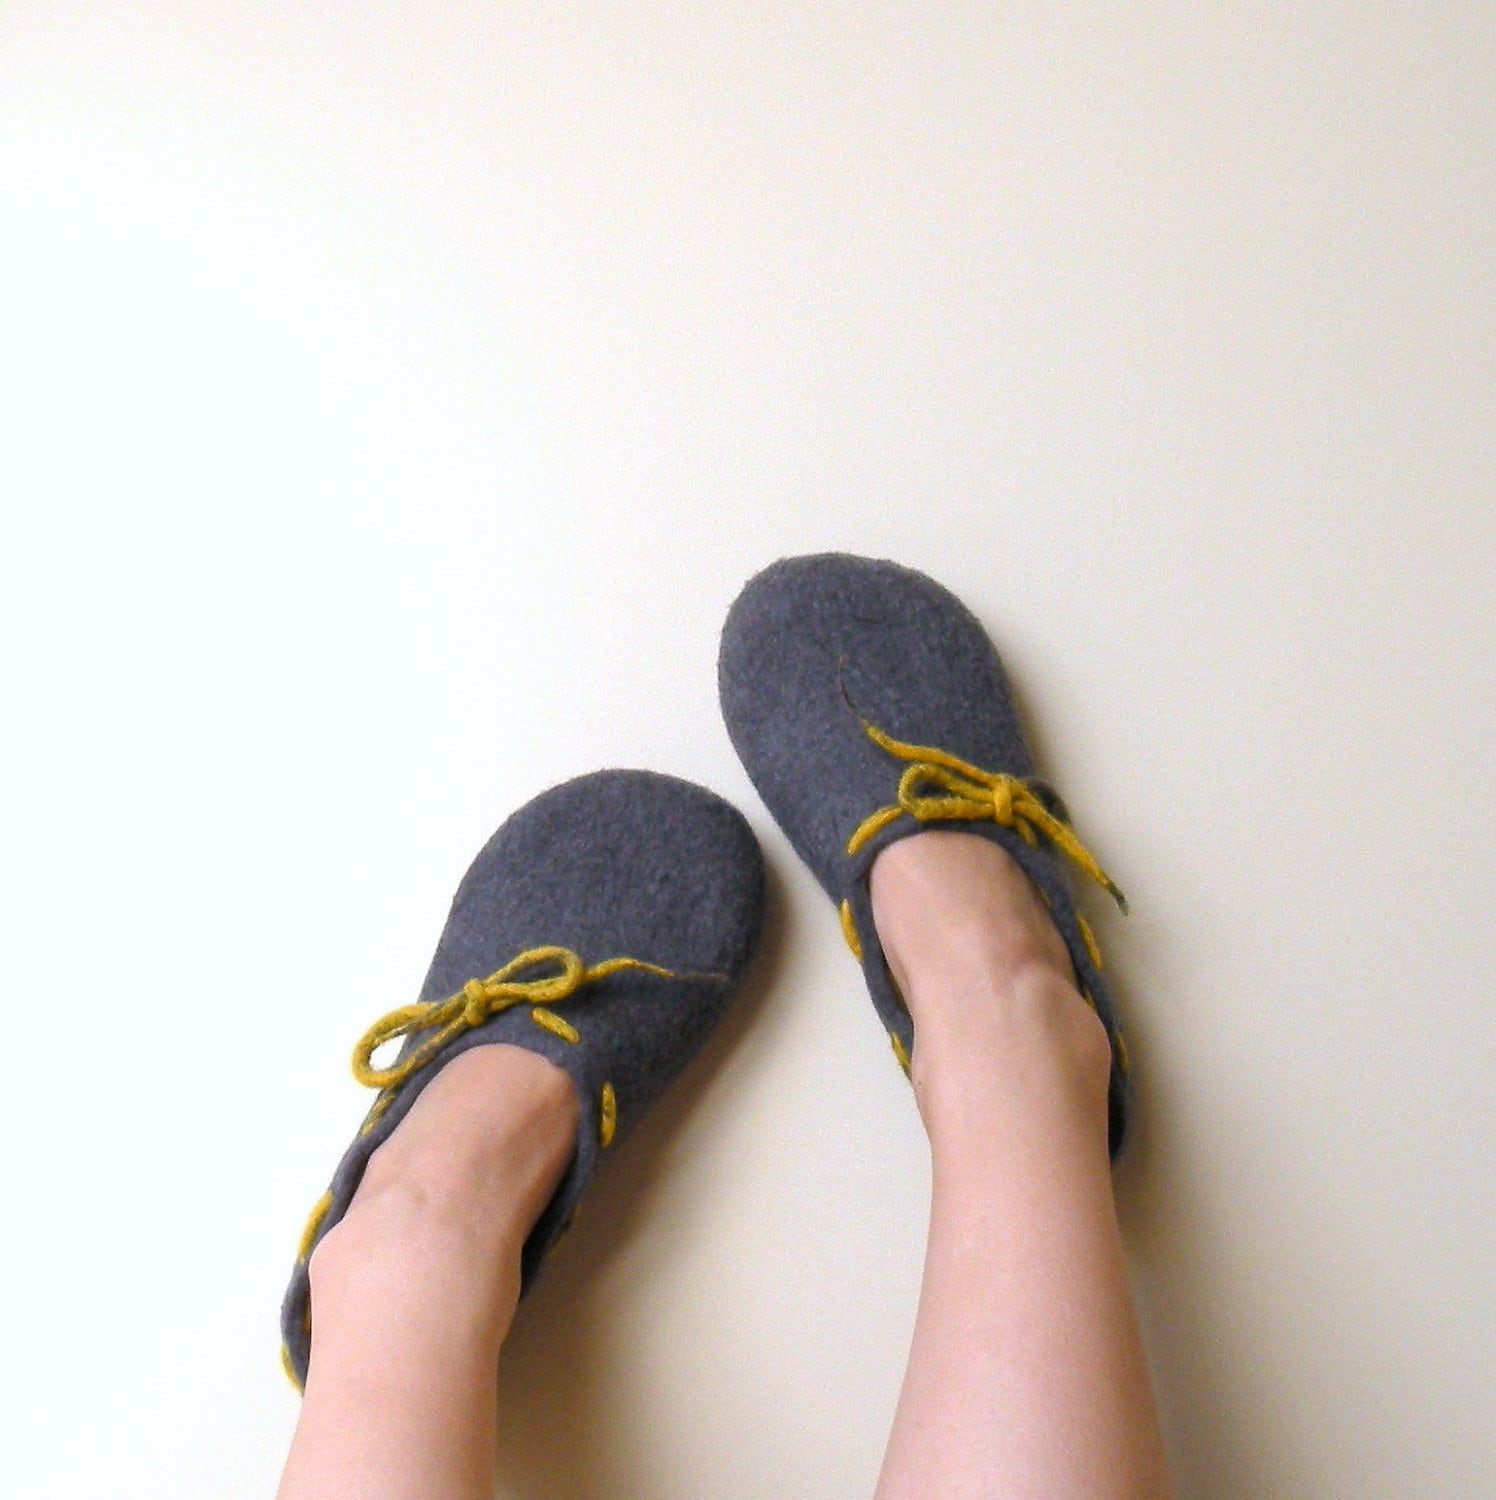 Felted wool women slippers Grey yellow - wool clogs - made to order - Wedding gift   - cozy warm - AgnesFelt